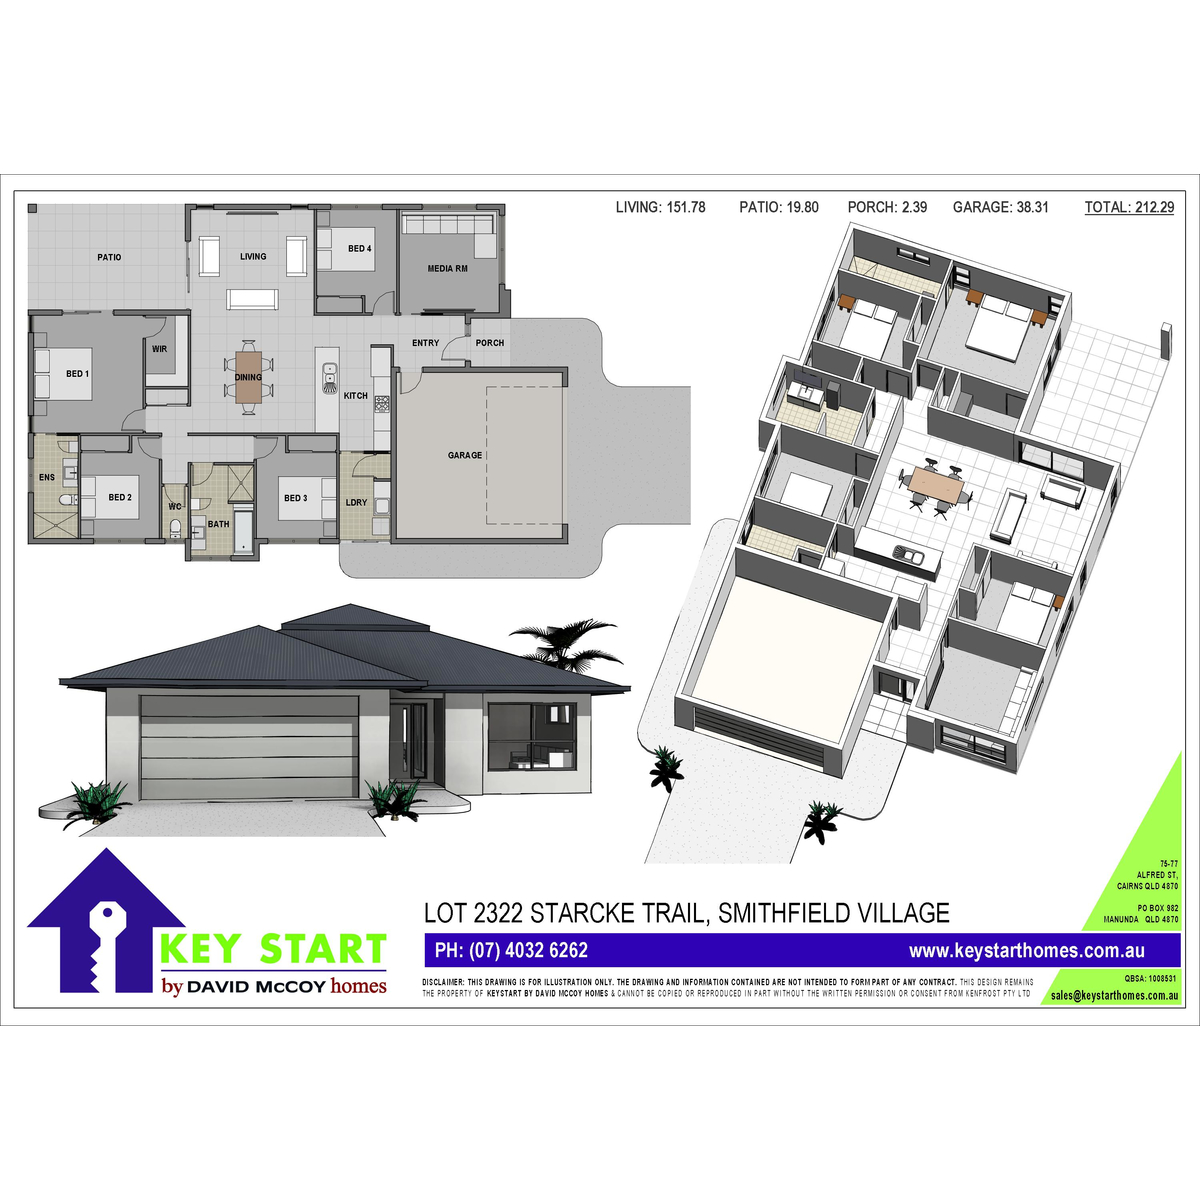 #2C05B3 Lot 2322 Starcke Trail Smithfield QLD 4878 Cairns Key  Best 8773 Air Conditioning Installation Cairns photos with 1200x1200 px on helpvideos.info - Air Conditioners, Air Coolers and more